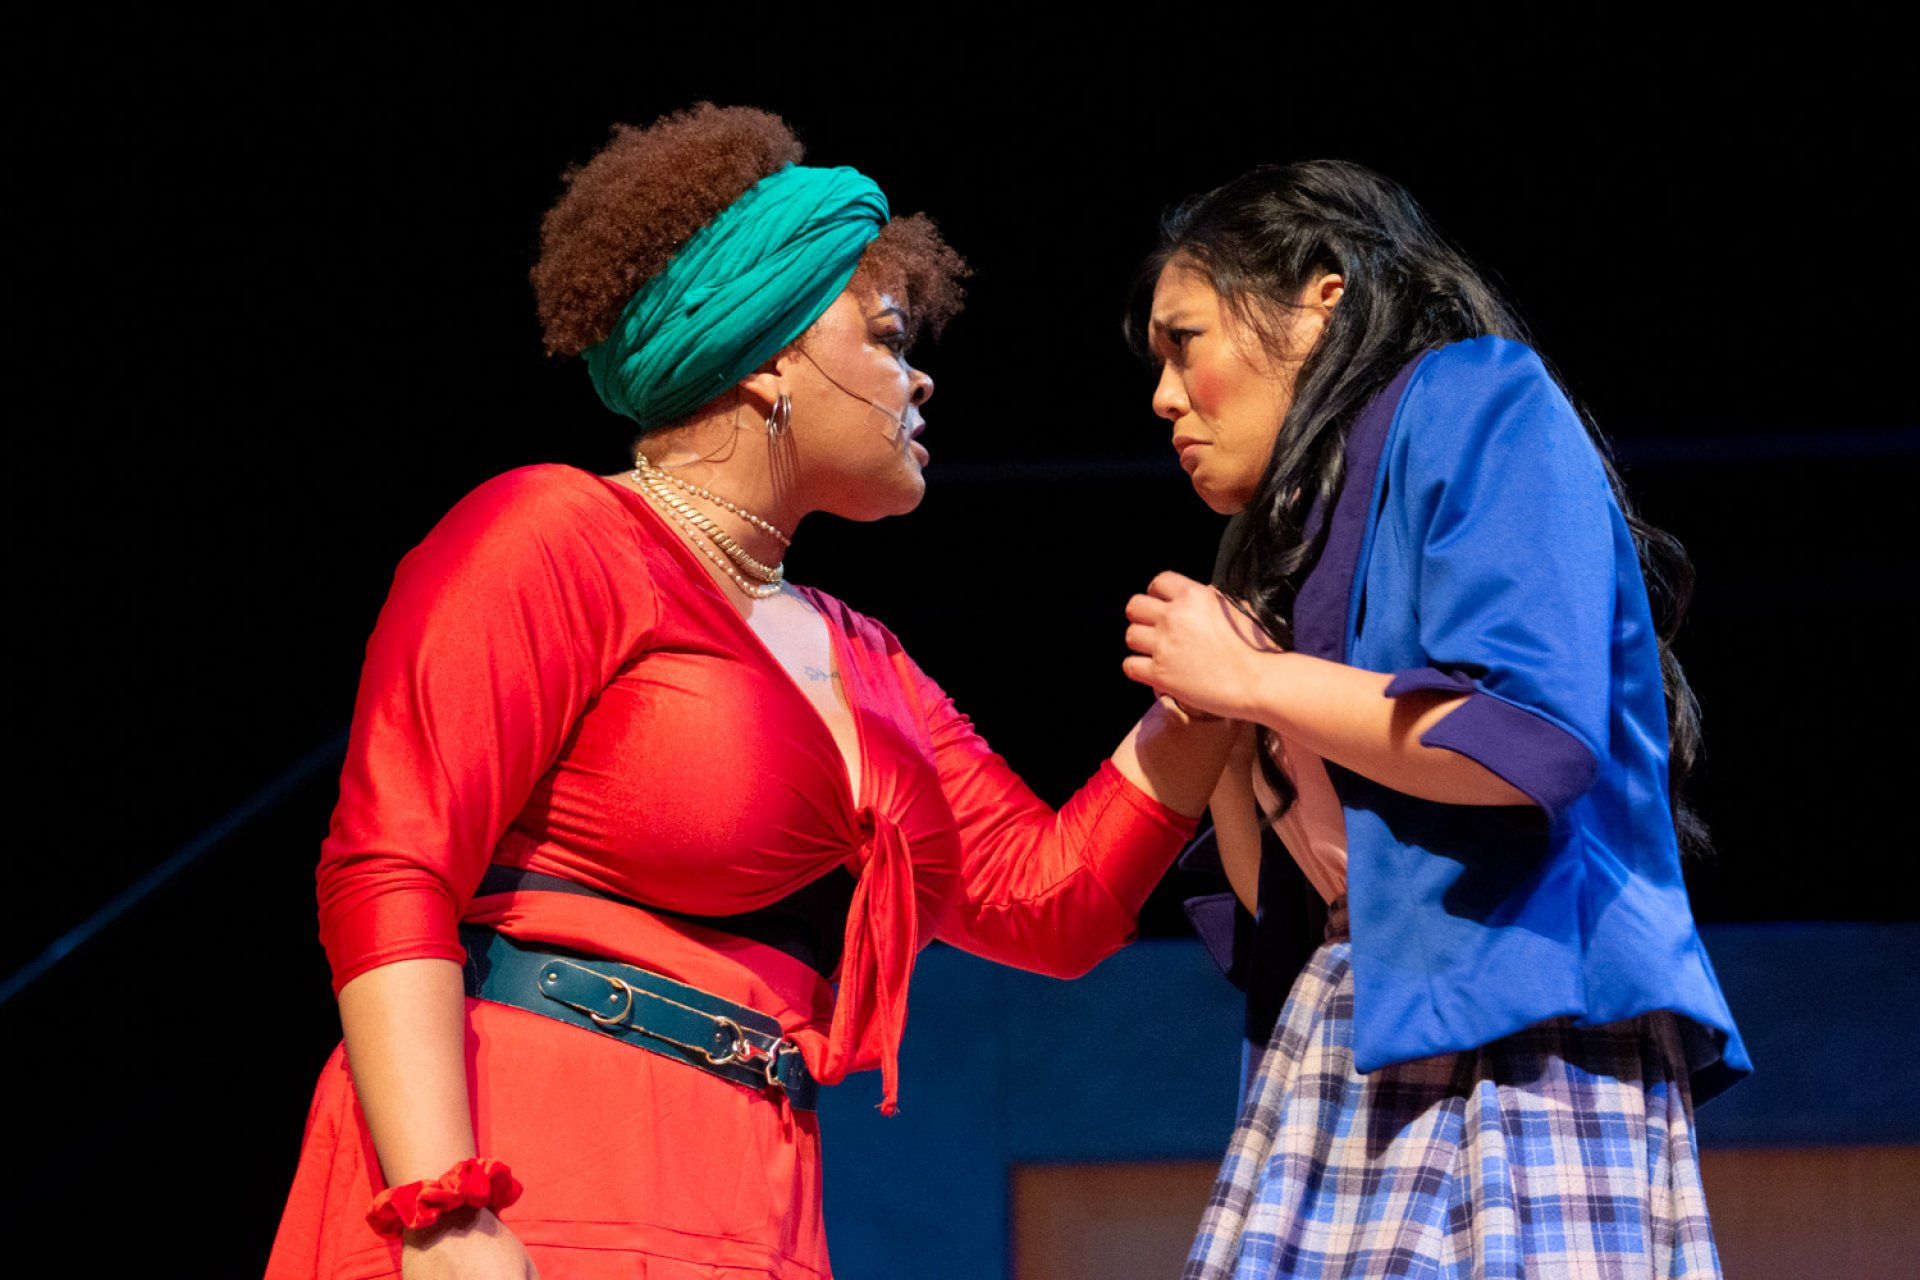 Kiara Hudlin, as Heather Chandler, grabs and threatens Gwynnevere Cristobal, as Veronica Sawyer, during a scene of